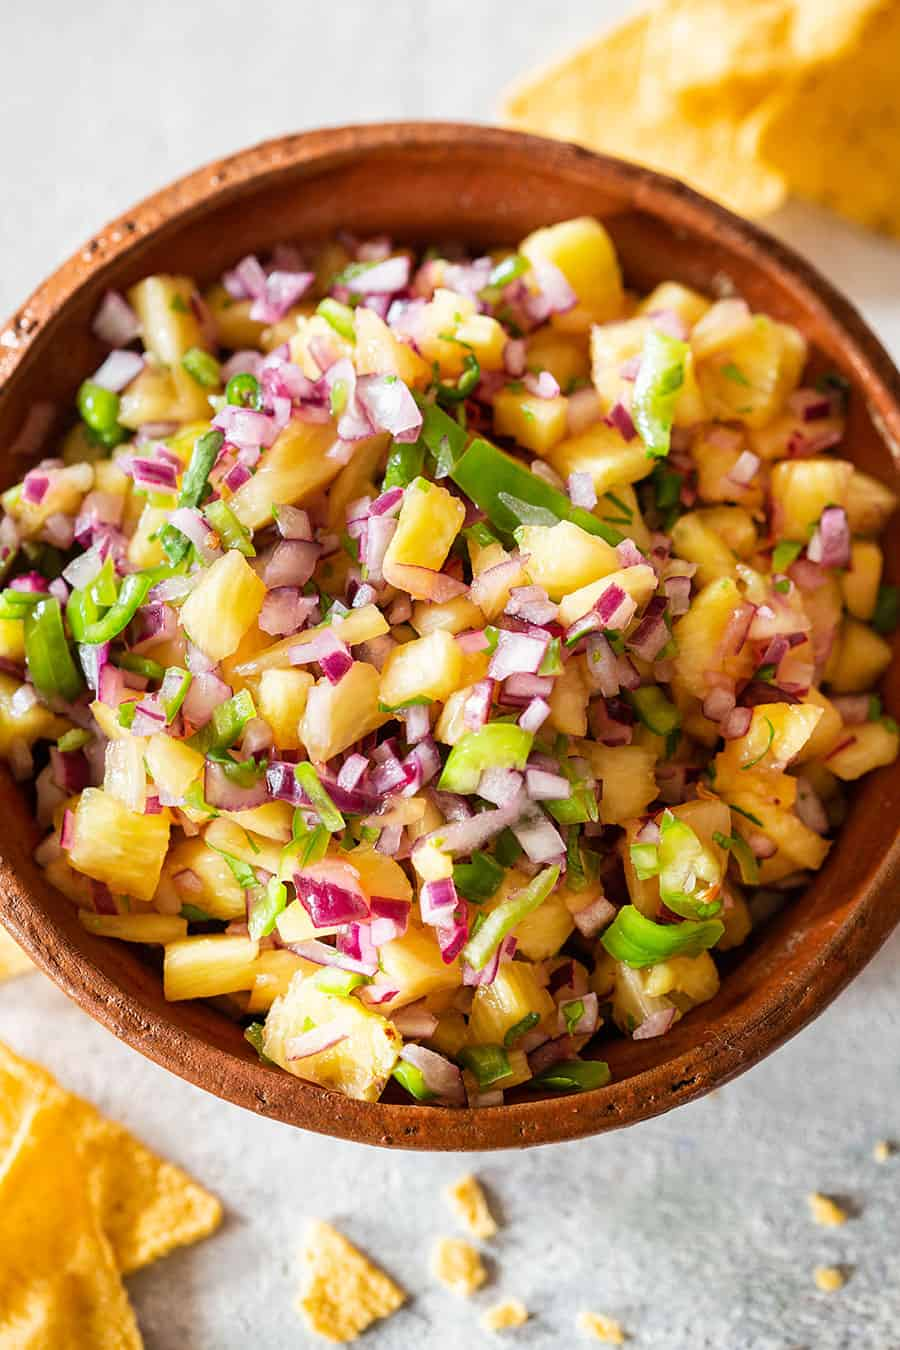 A clay bowl loaded with pineapple jalapeno salad.